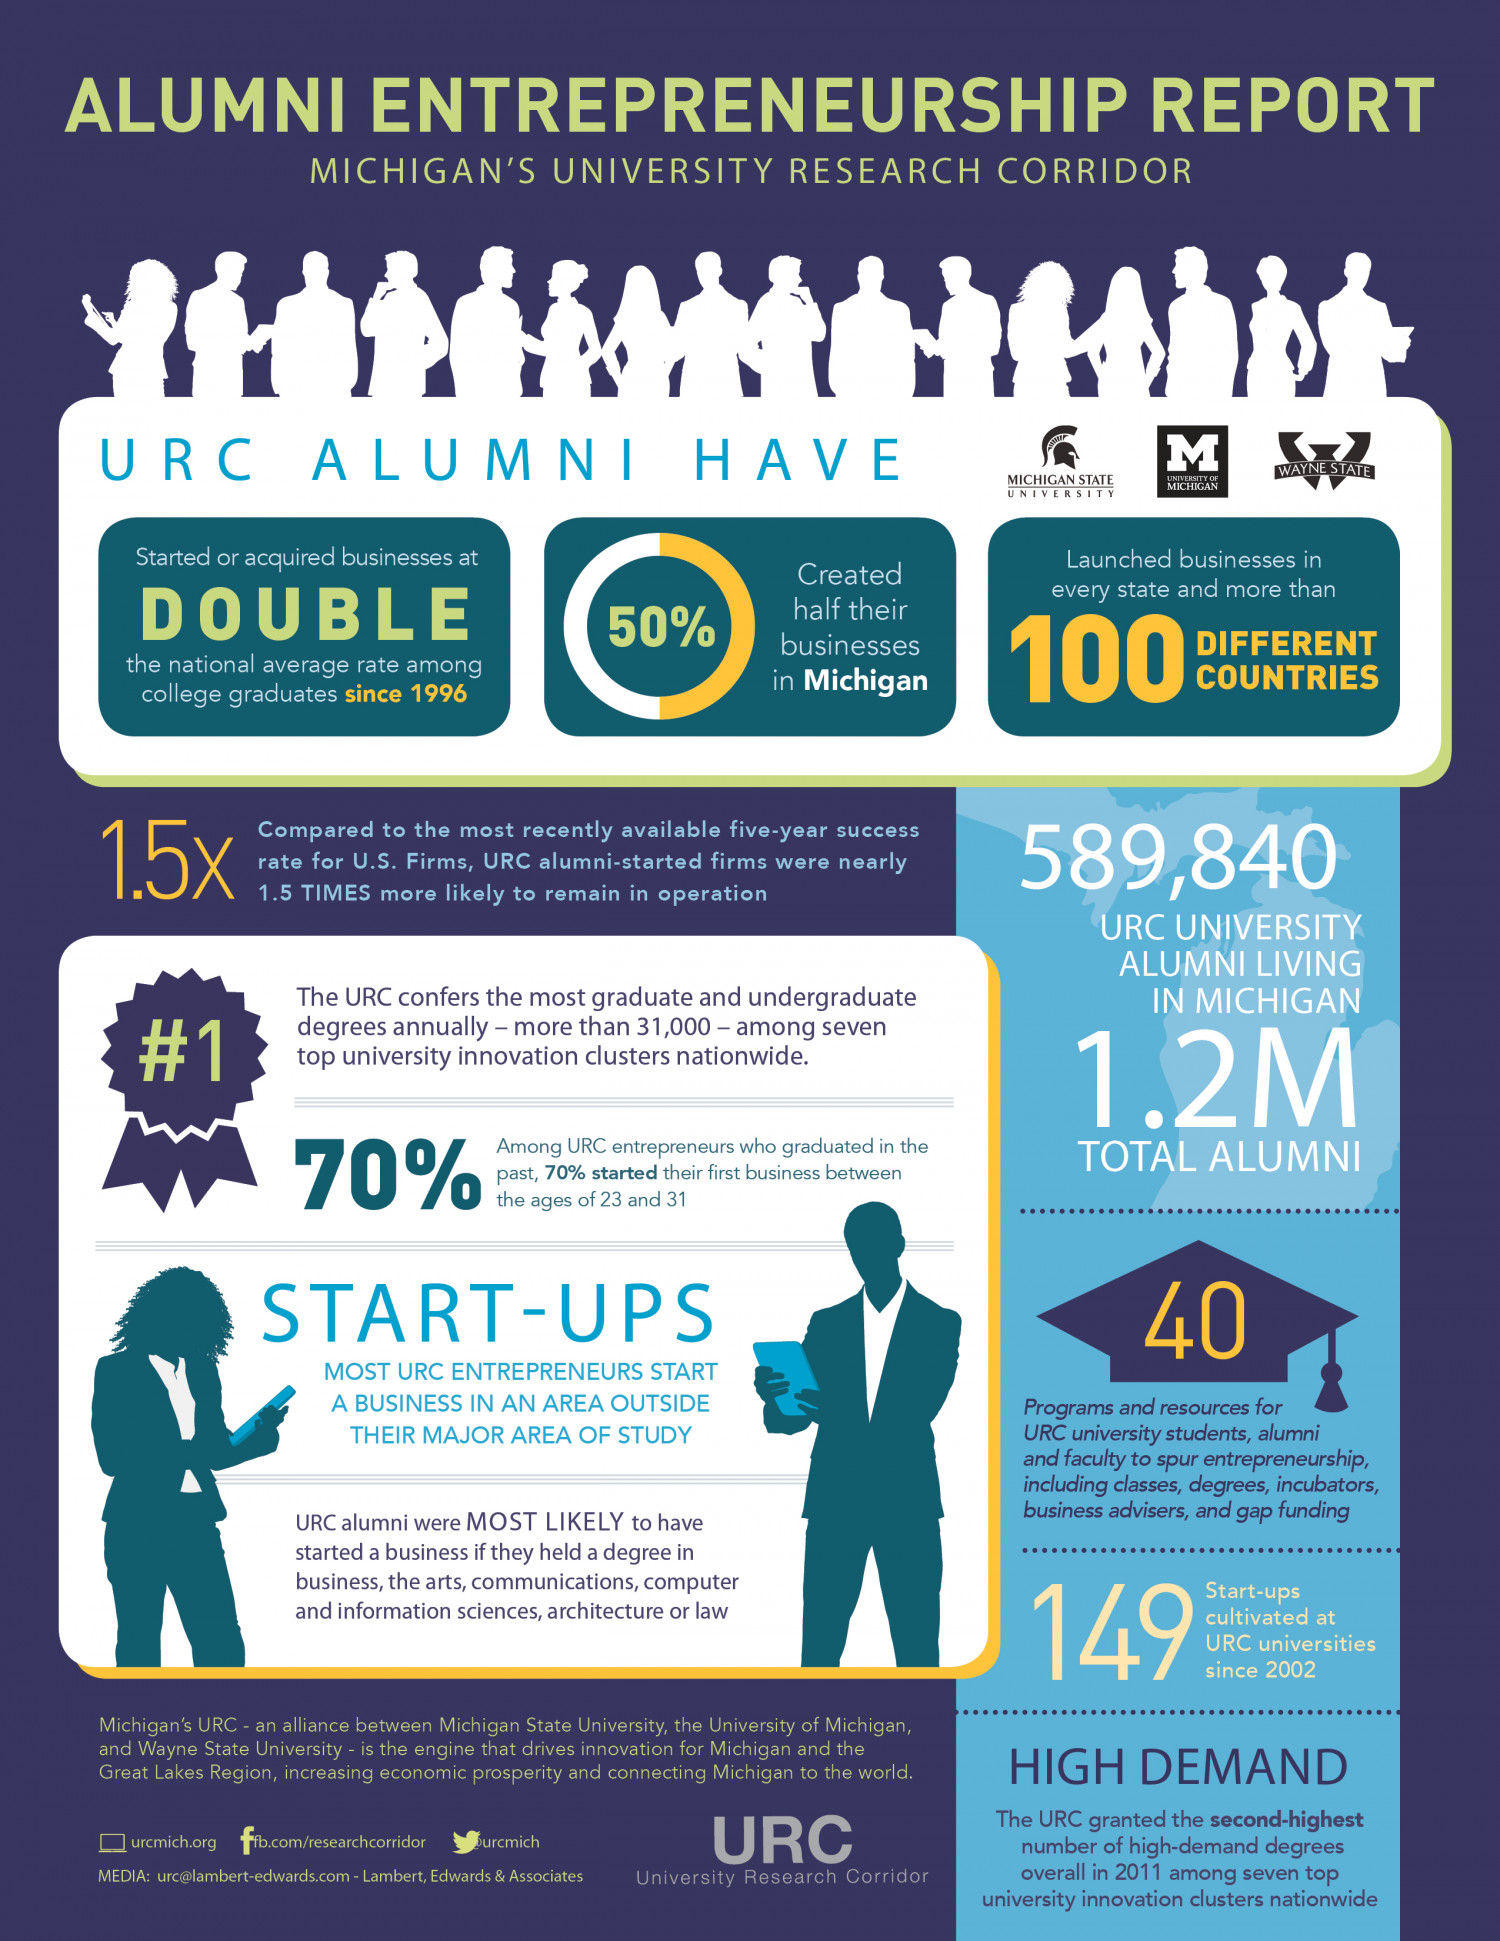 Alumni Entrepreneurship Report Infographic